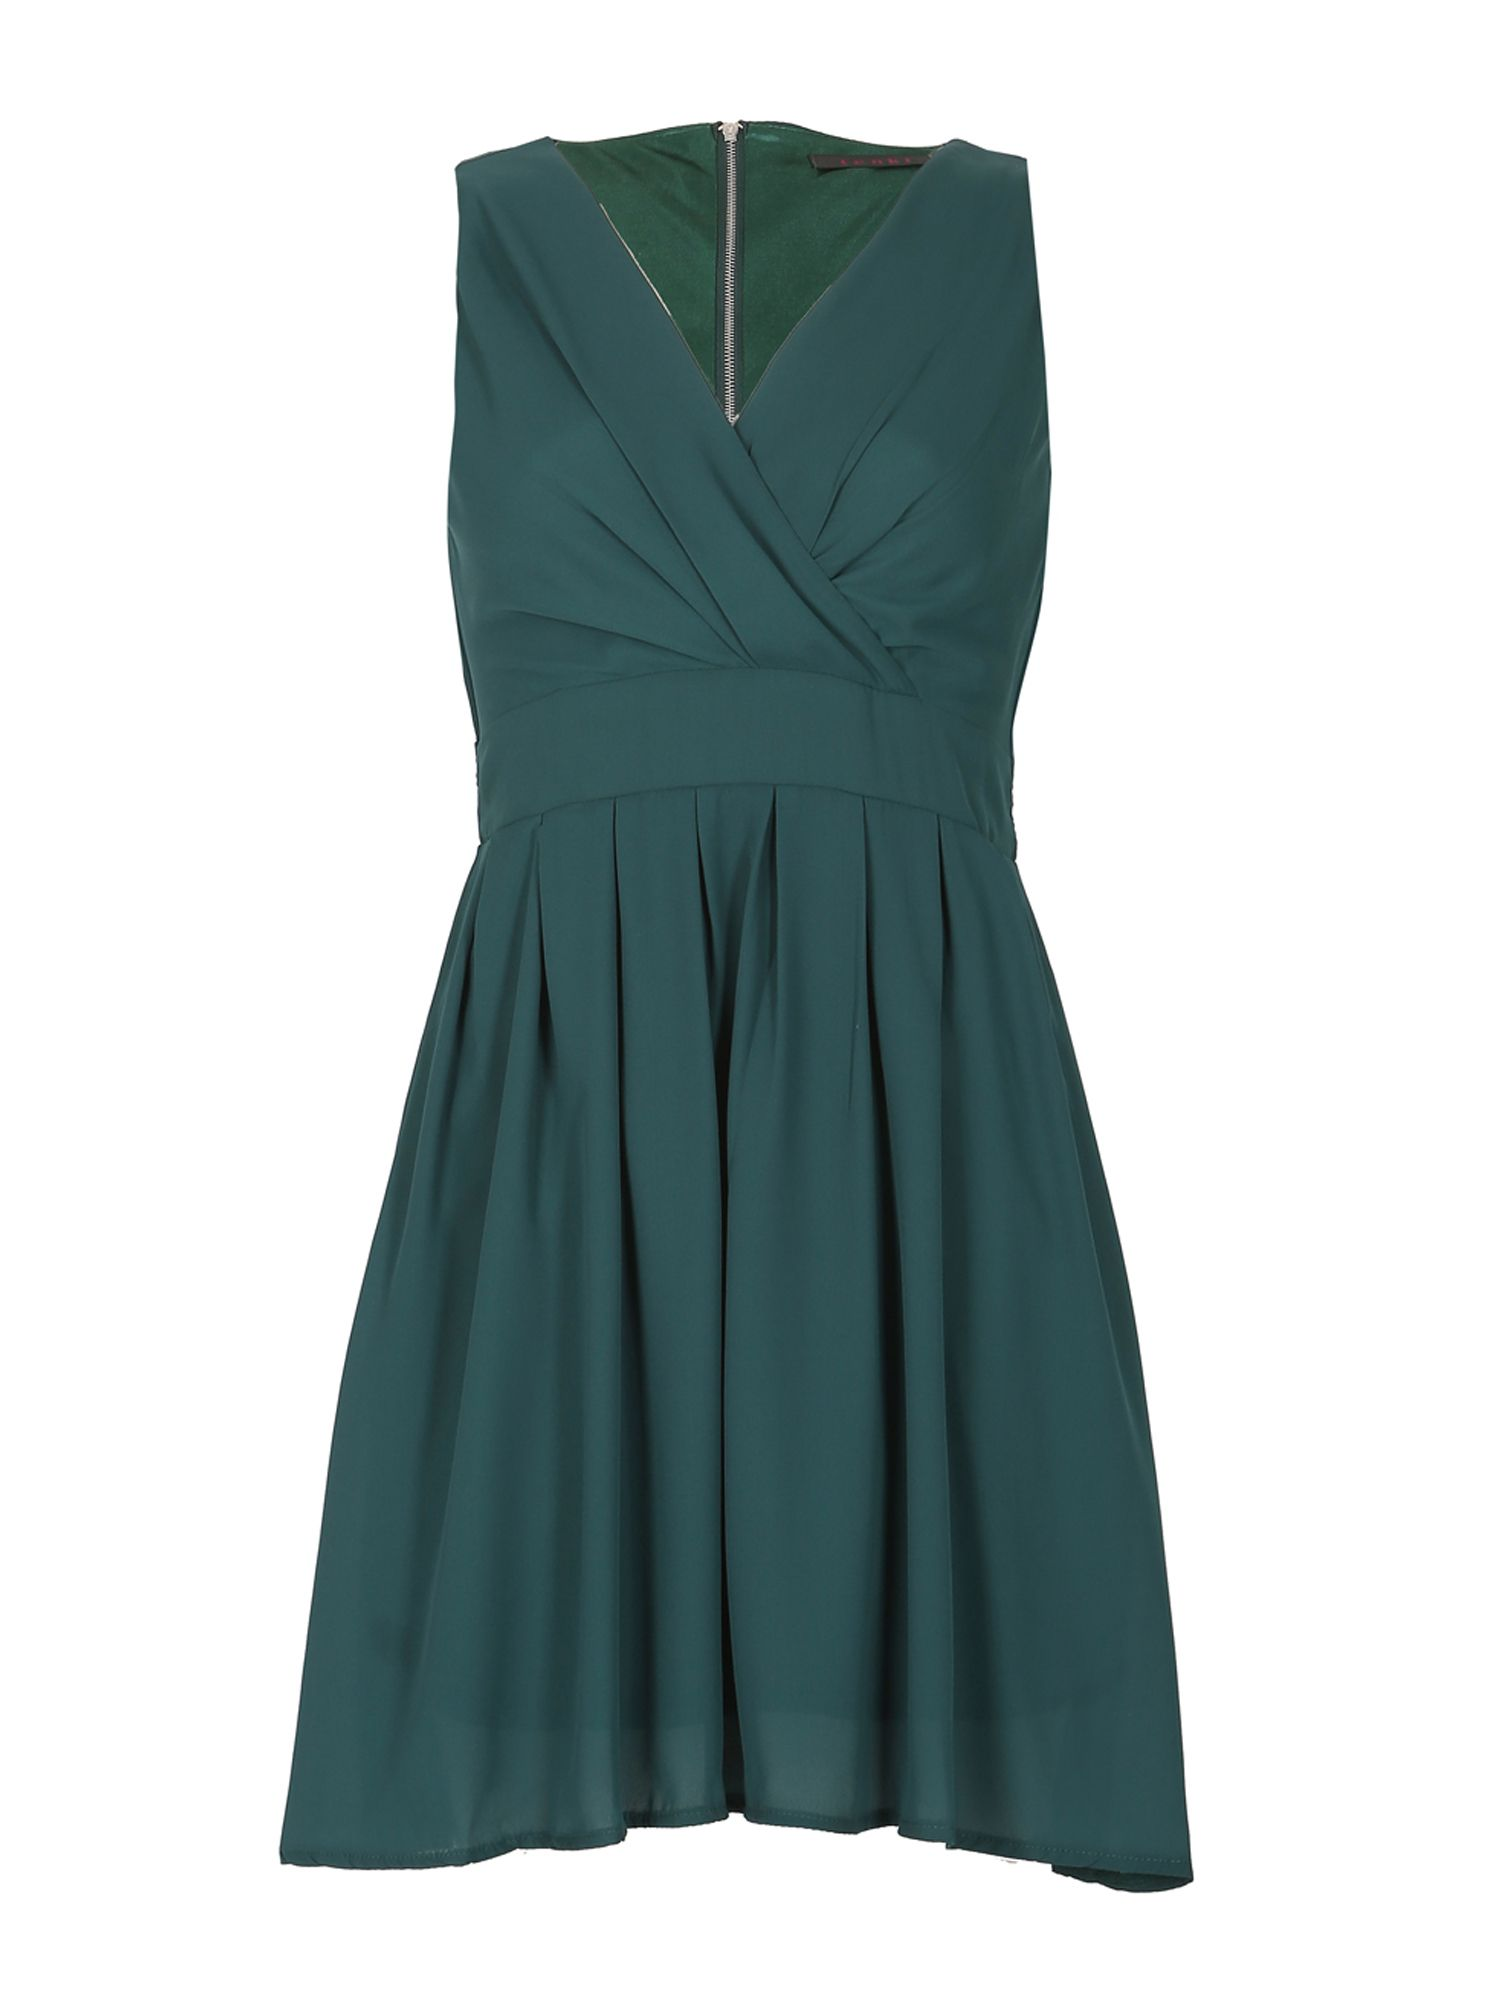 TENKI V-Neck Pleated Plain Skater Dress, Green